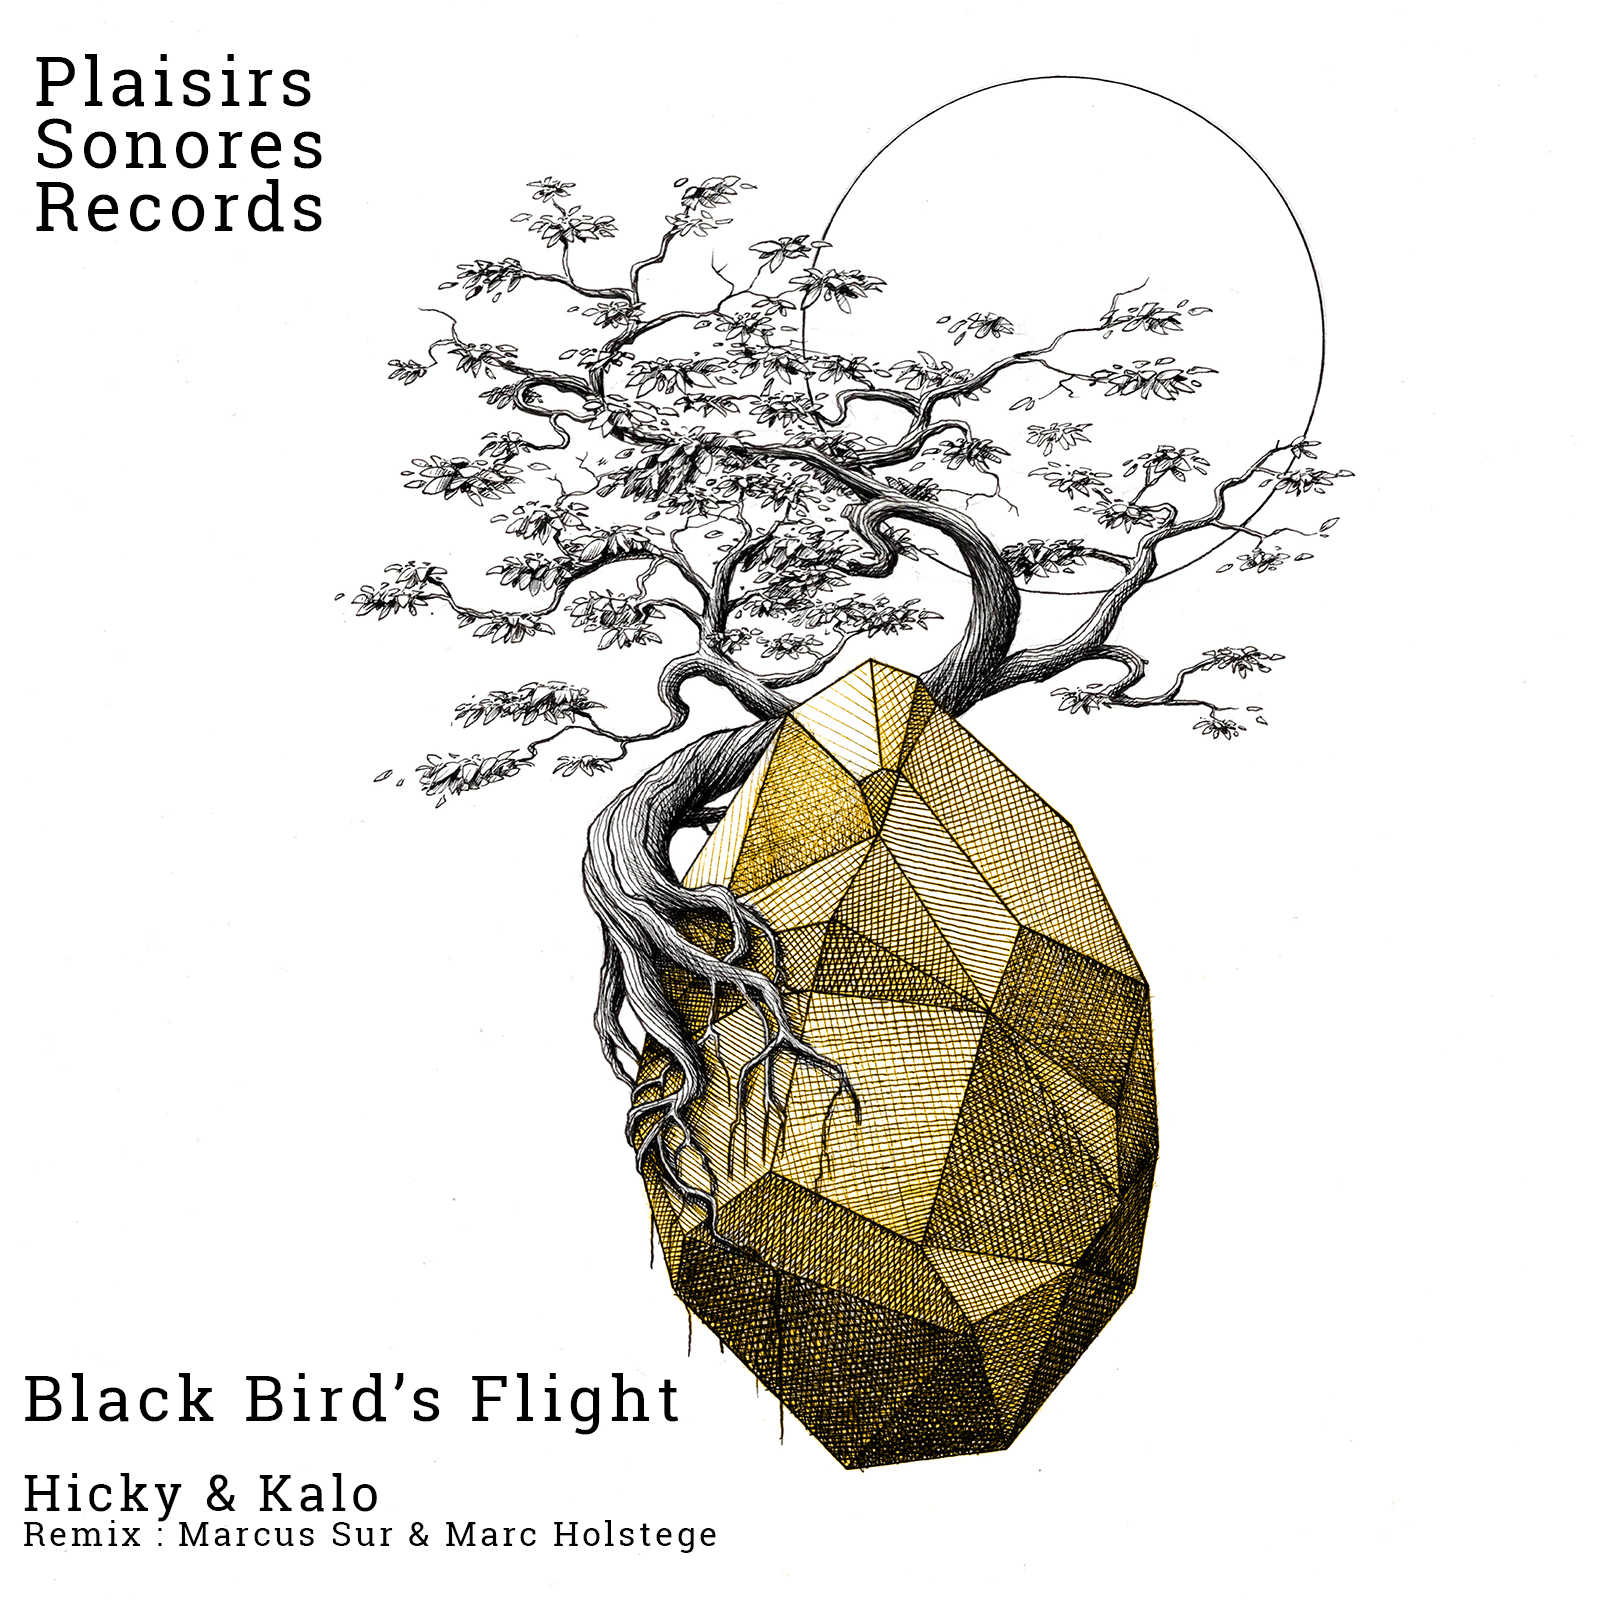 Hicky & Kalo – Black Bird's Flight (Marcus Sur Remix)(Plaisirs Sonores Records)